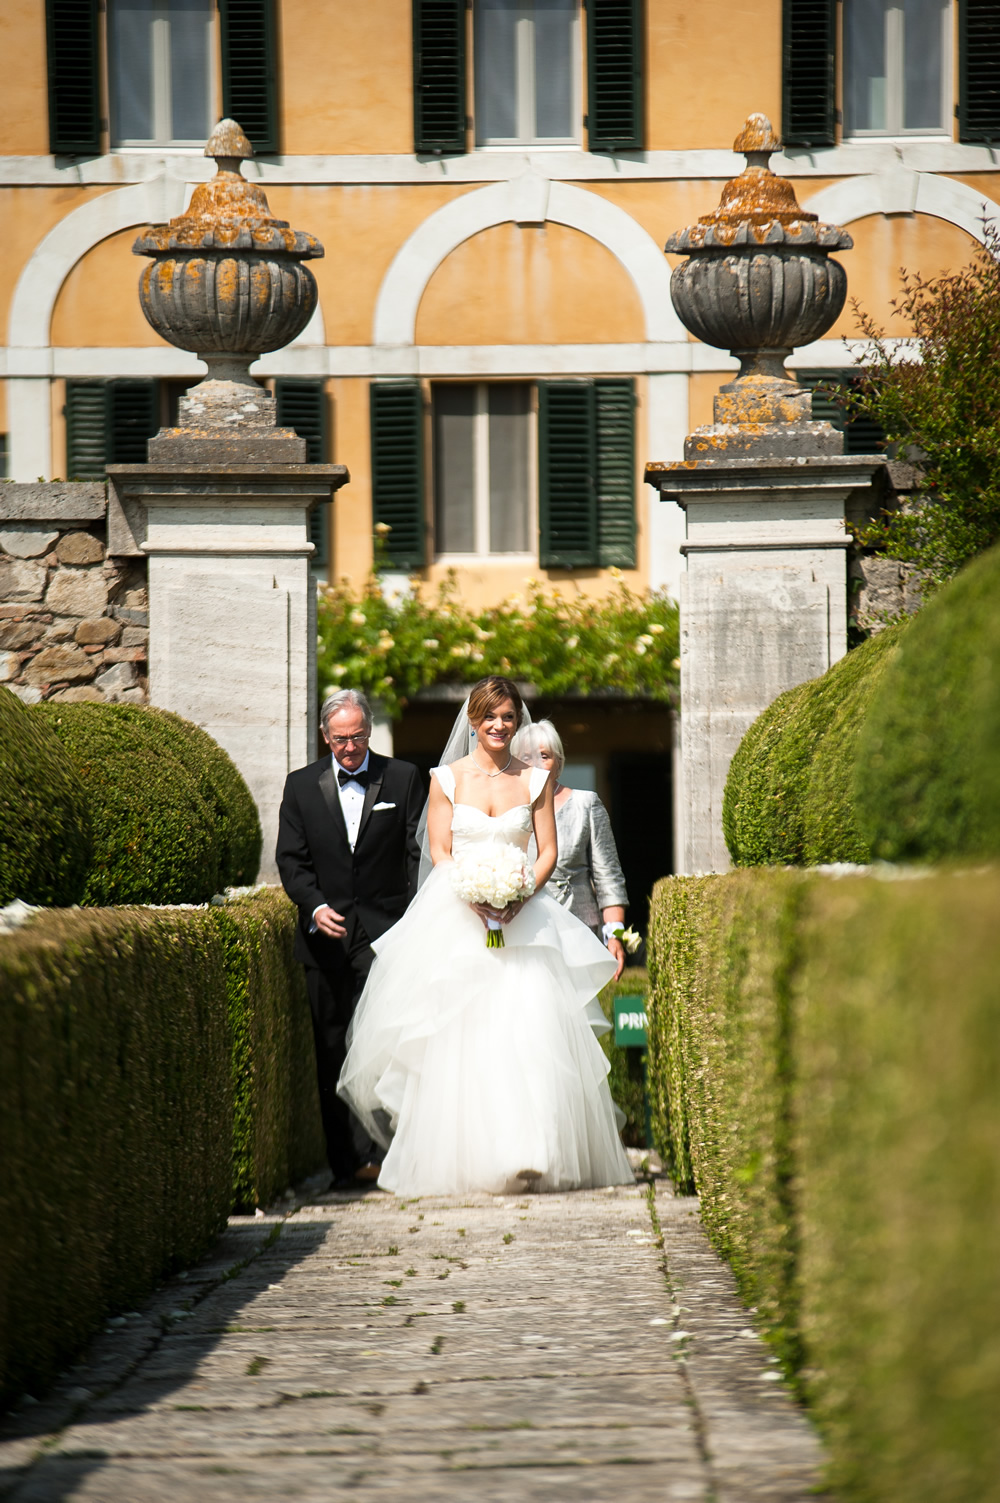 Wedding ceremony garden in Tuscany